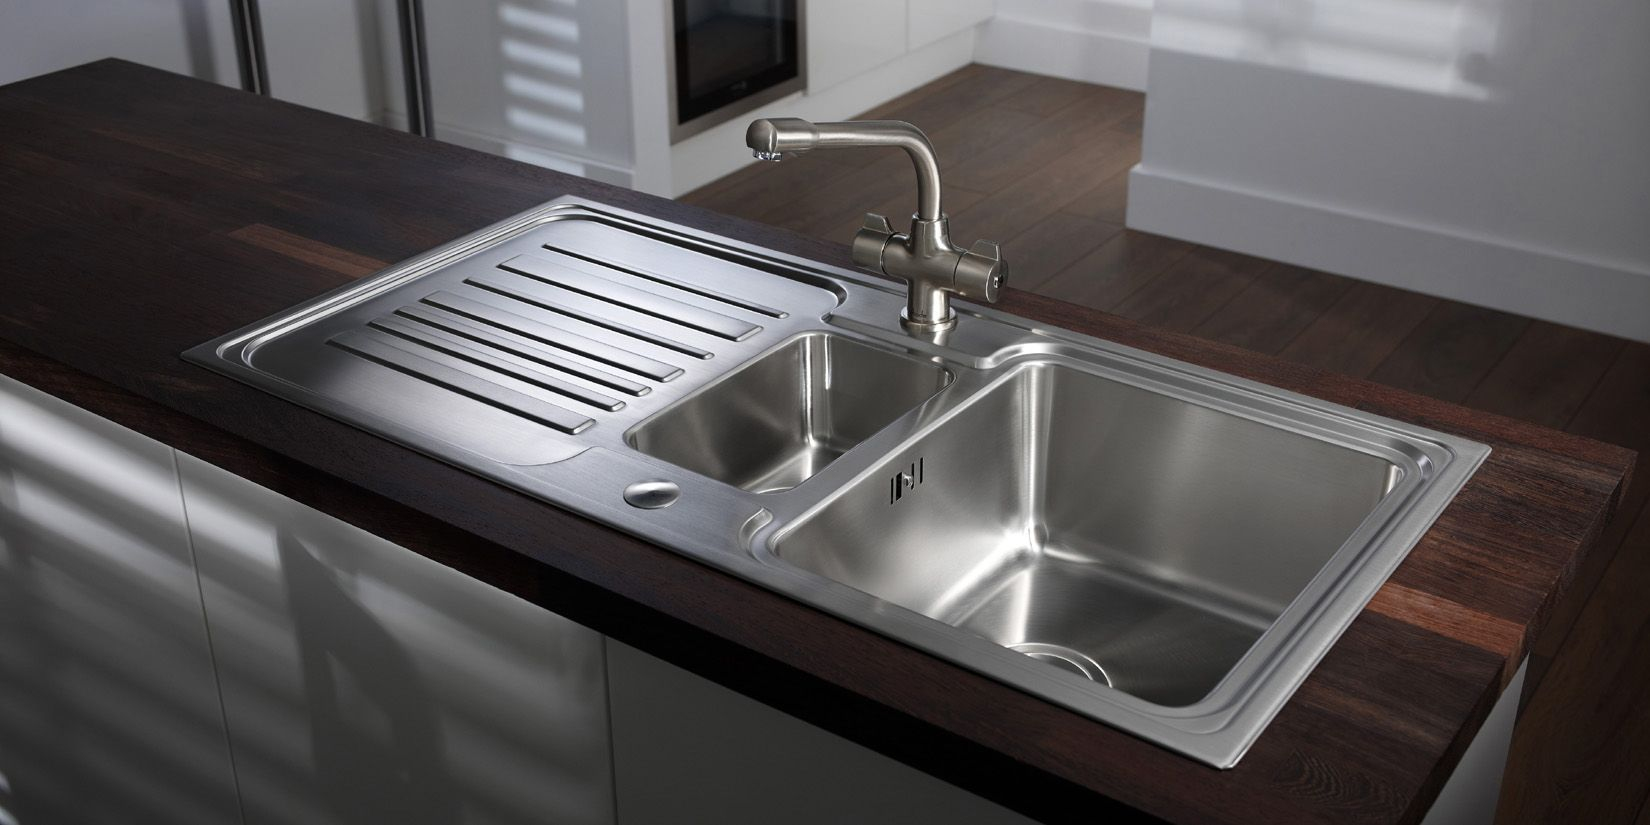 kitchen vintage kitchen sink design two square small big stainless steel sink stainless steel faucet - Kitchen Sinks Photos